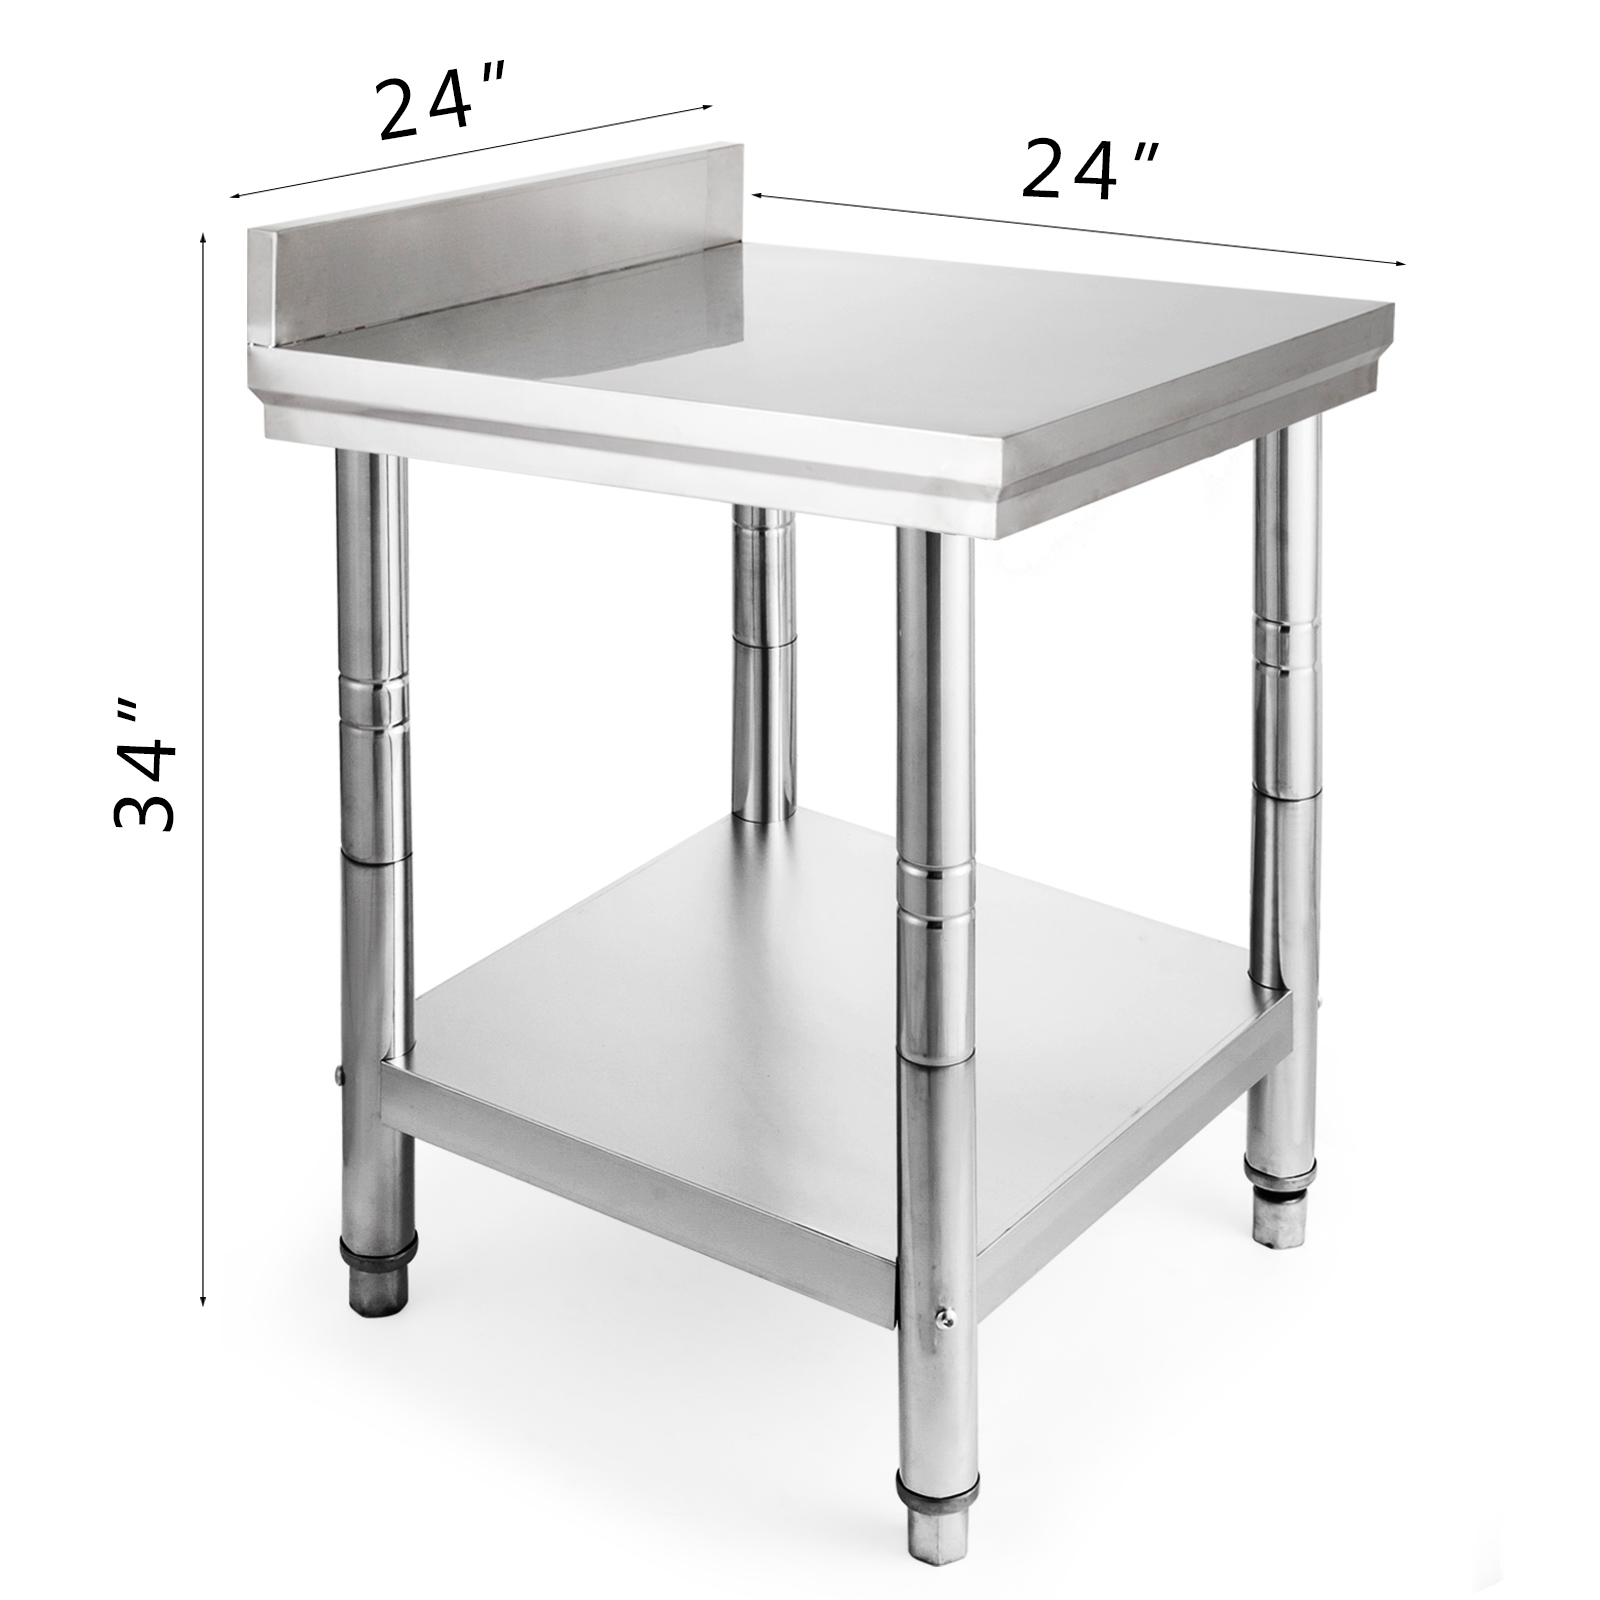 "Stainless Steel Kitchen Work Table: 24"" X 24"" Stainless Steel Kitchen Work Table Commercial"